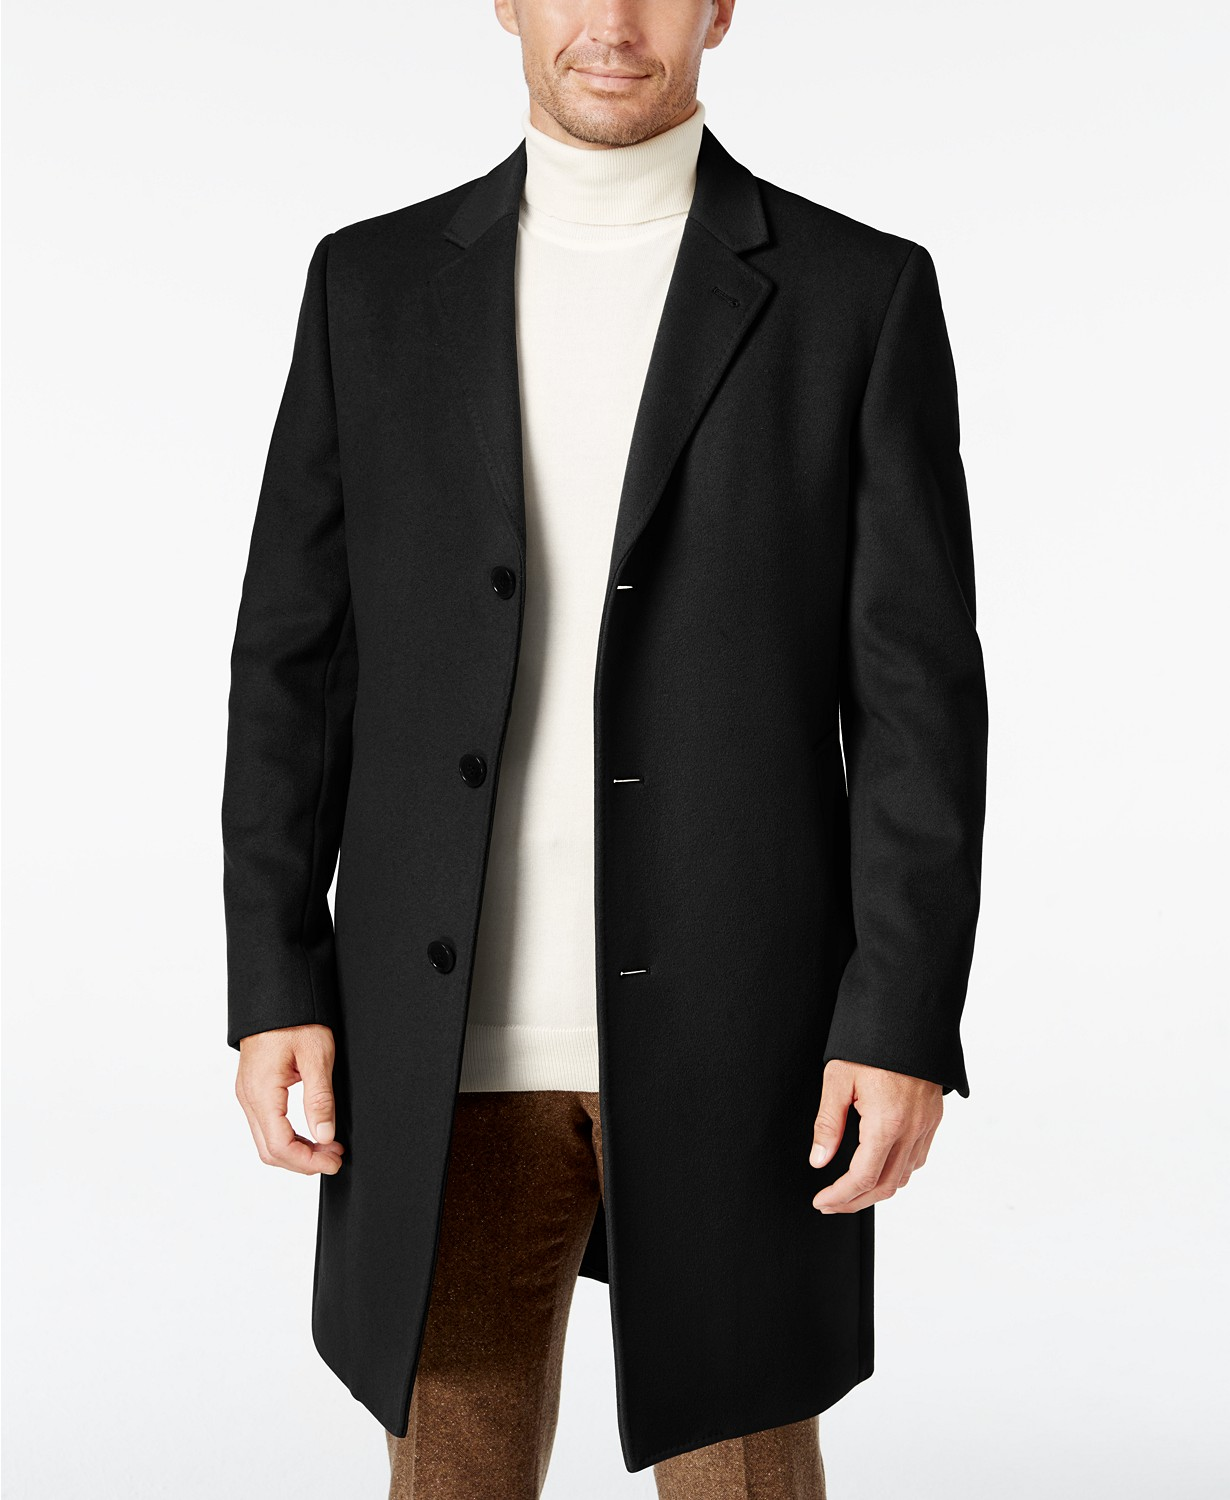 (74% OFF Deal) Ralph Lauren Men's Luther Wool Blend Top Coat $129.99